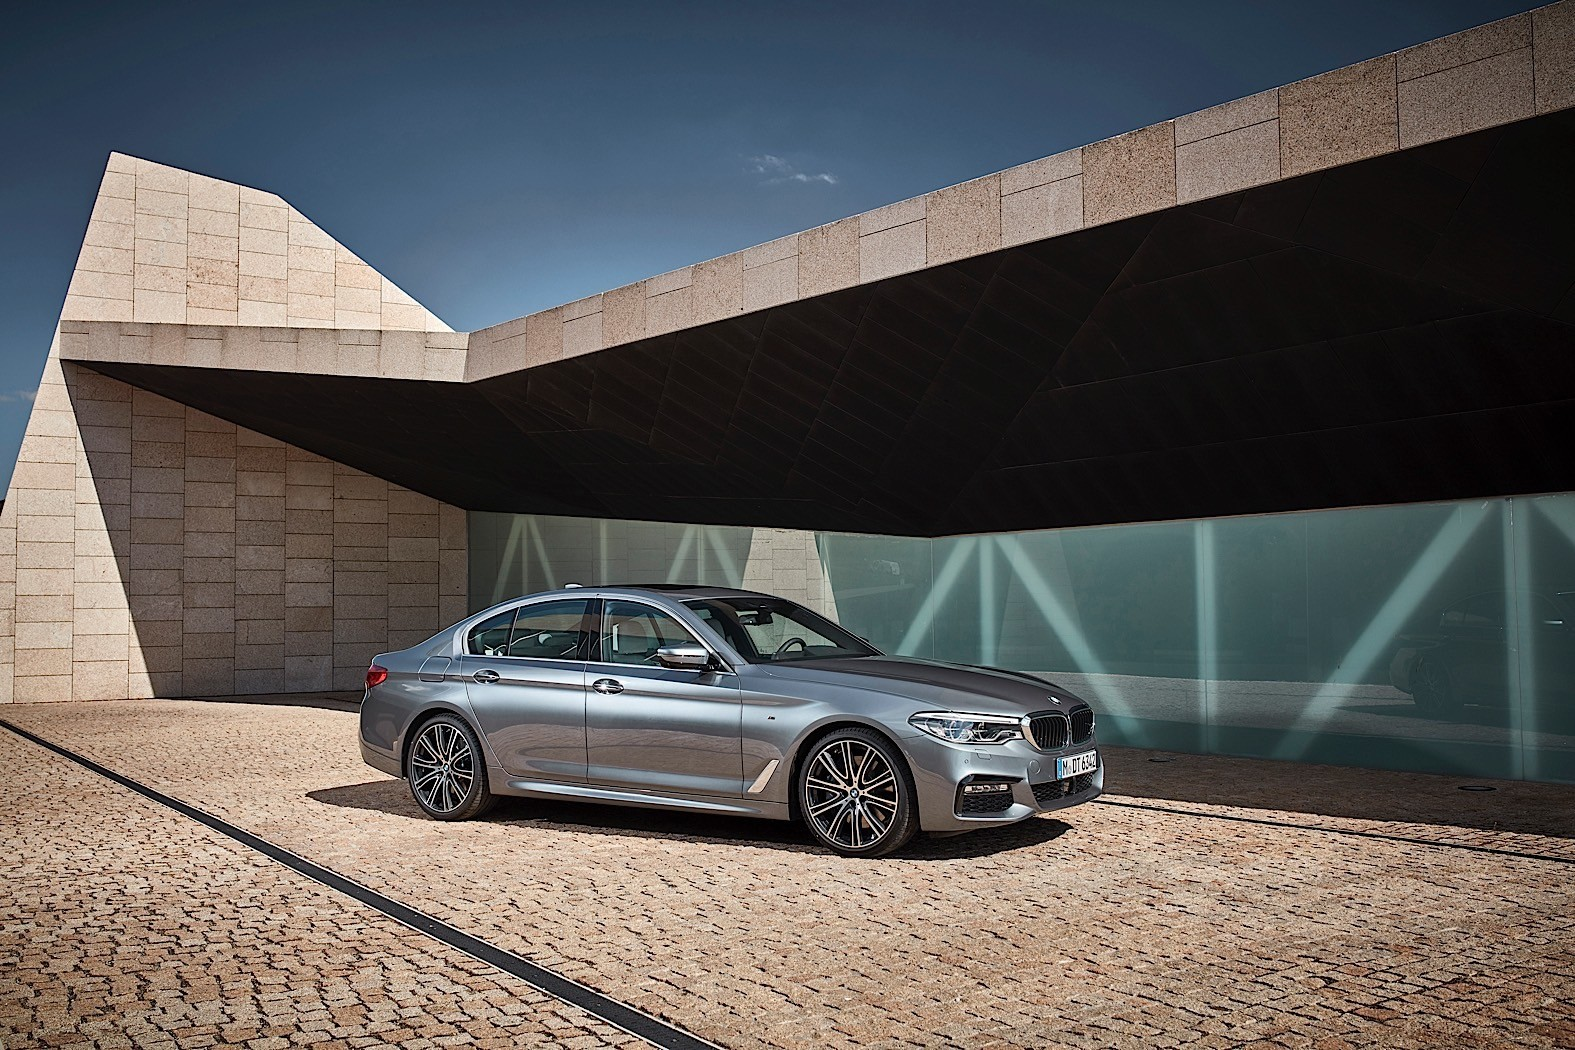 5 Reasons The 2017 Bmw G30 5 Series Is Better Than The F10 5 Series